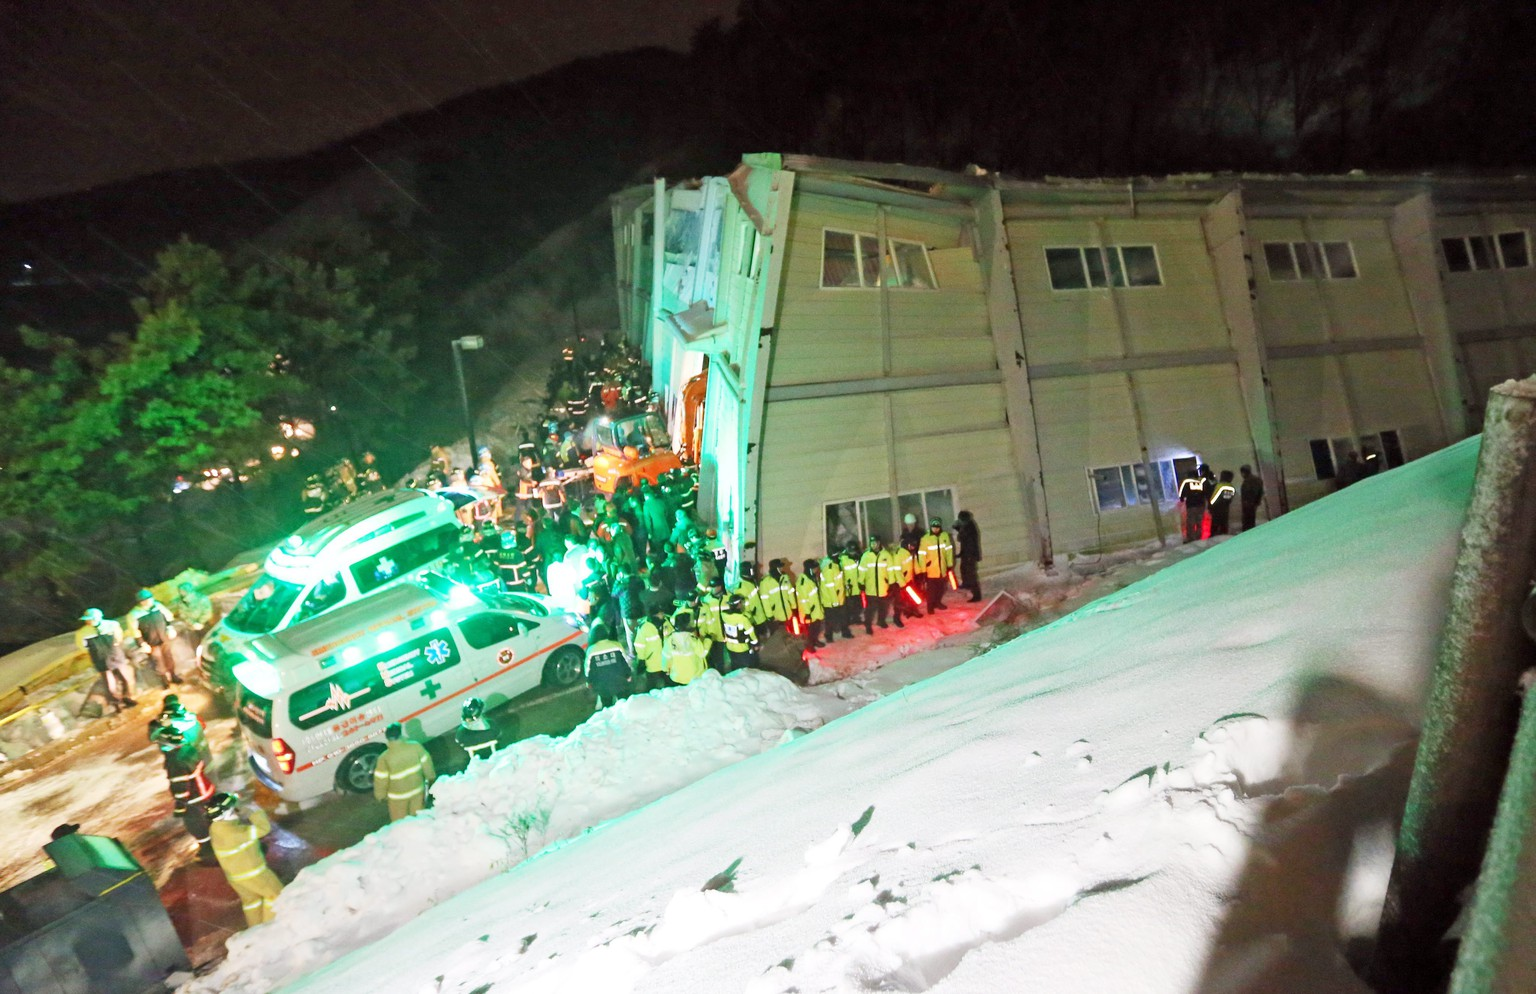 epa04084462 Rescue efforts are underway at the scene of a resort roof collapse in Gyeongju, southeastern South Korea, 18 February 2014. At least ten people were killed and more than 100 injured in the disaster.  EPA/YONHAP SOUTH KOREA OUT